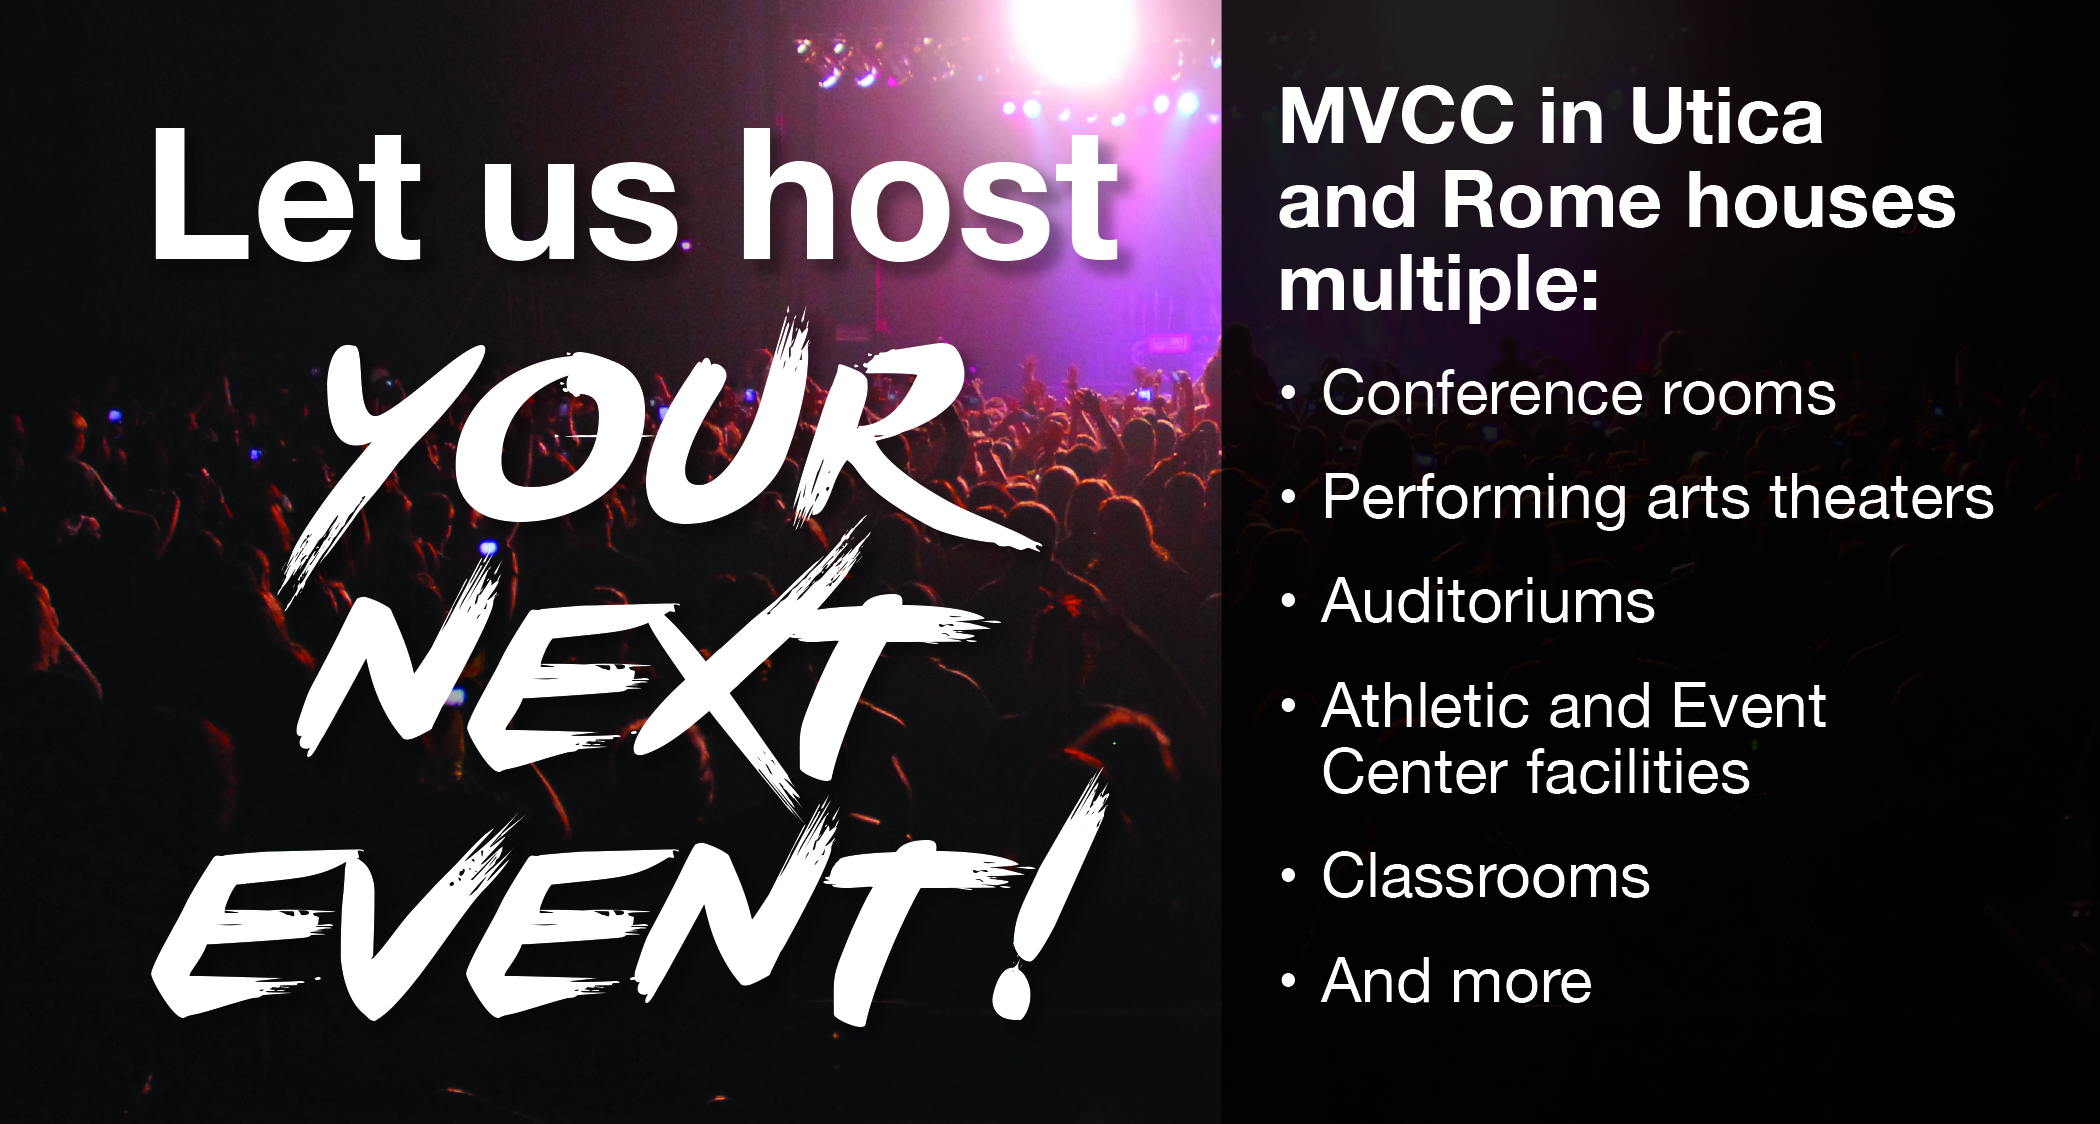 MVCC's Rome and Utica campuses houses multiple features:   Conference rooms Performing art theaters Auditoriums Athletic and event center facilities Classrooms And more Let us host your next event